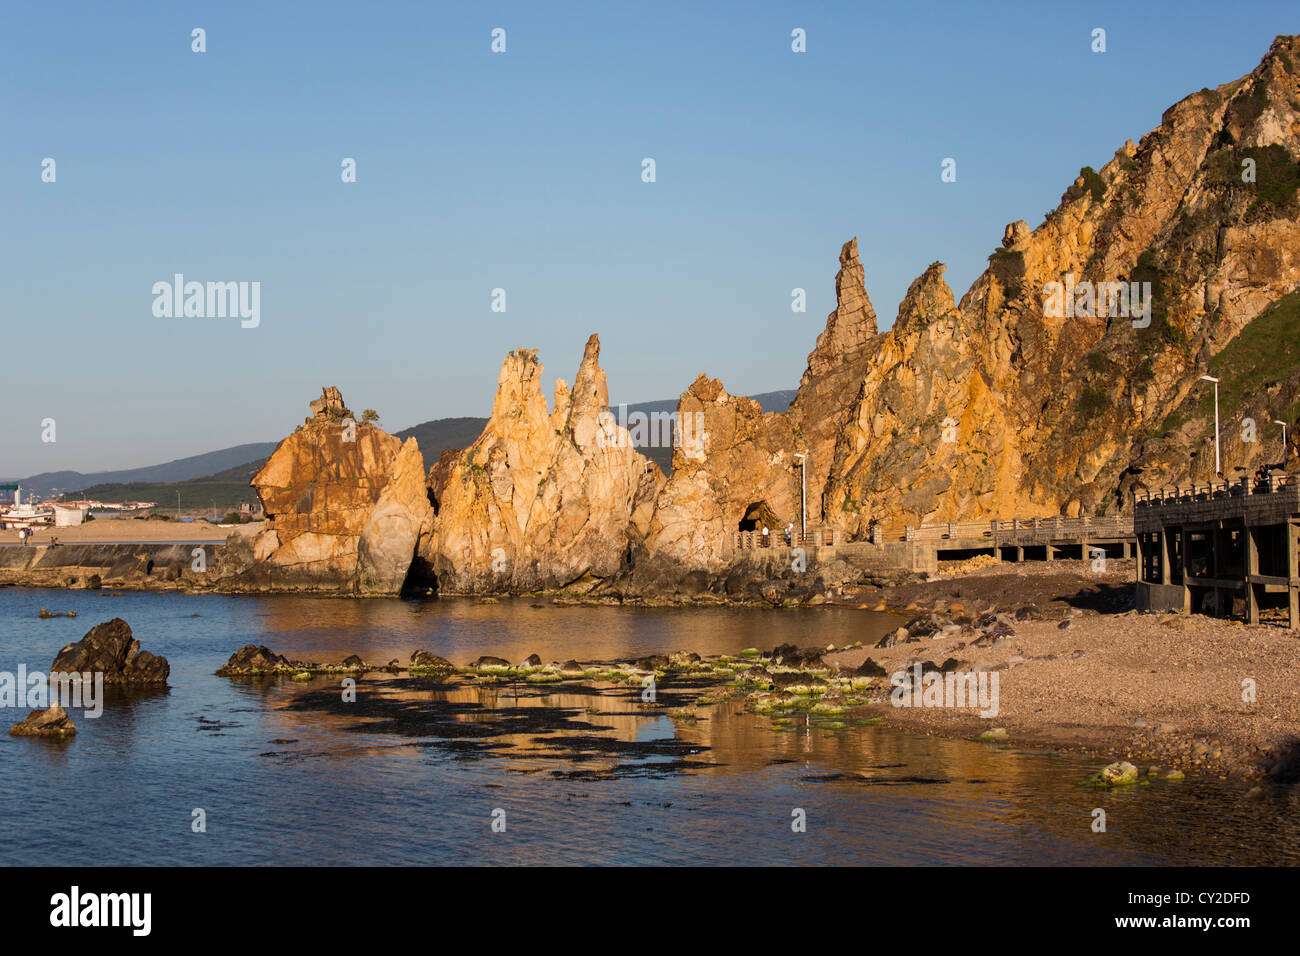 The Needles in Tabarka Tunisia - Stock Image